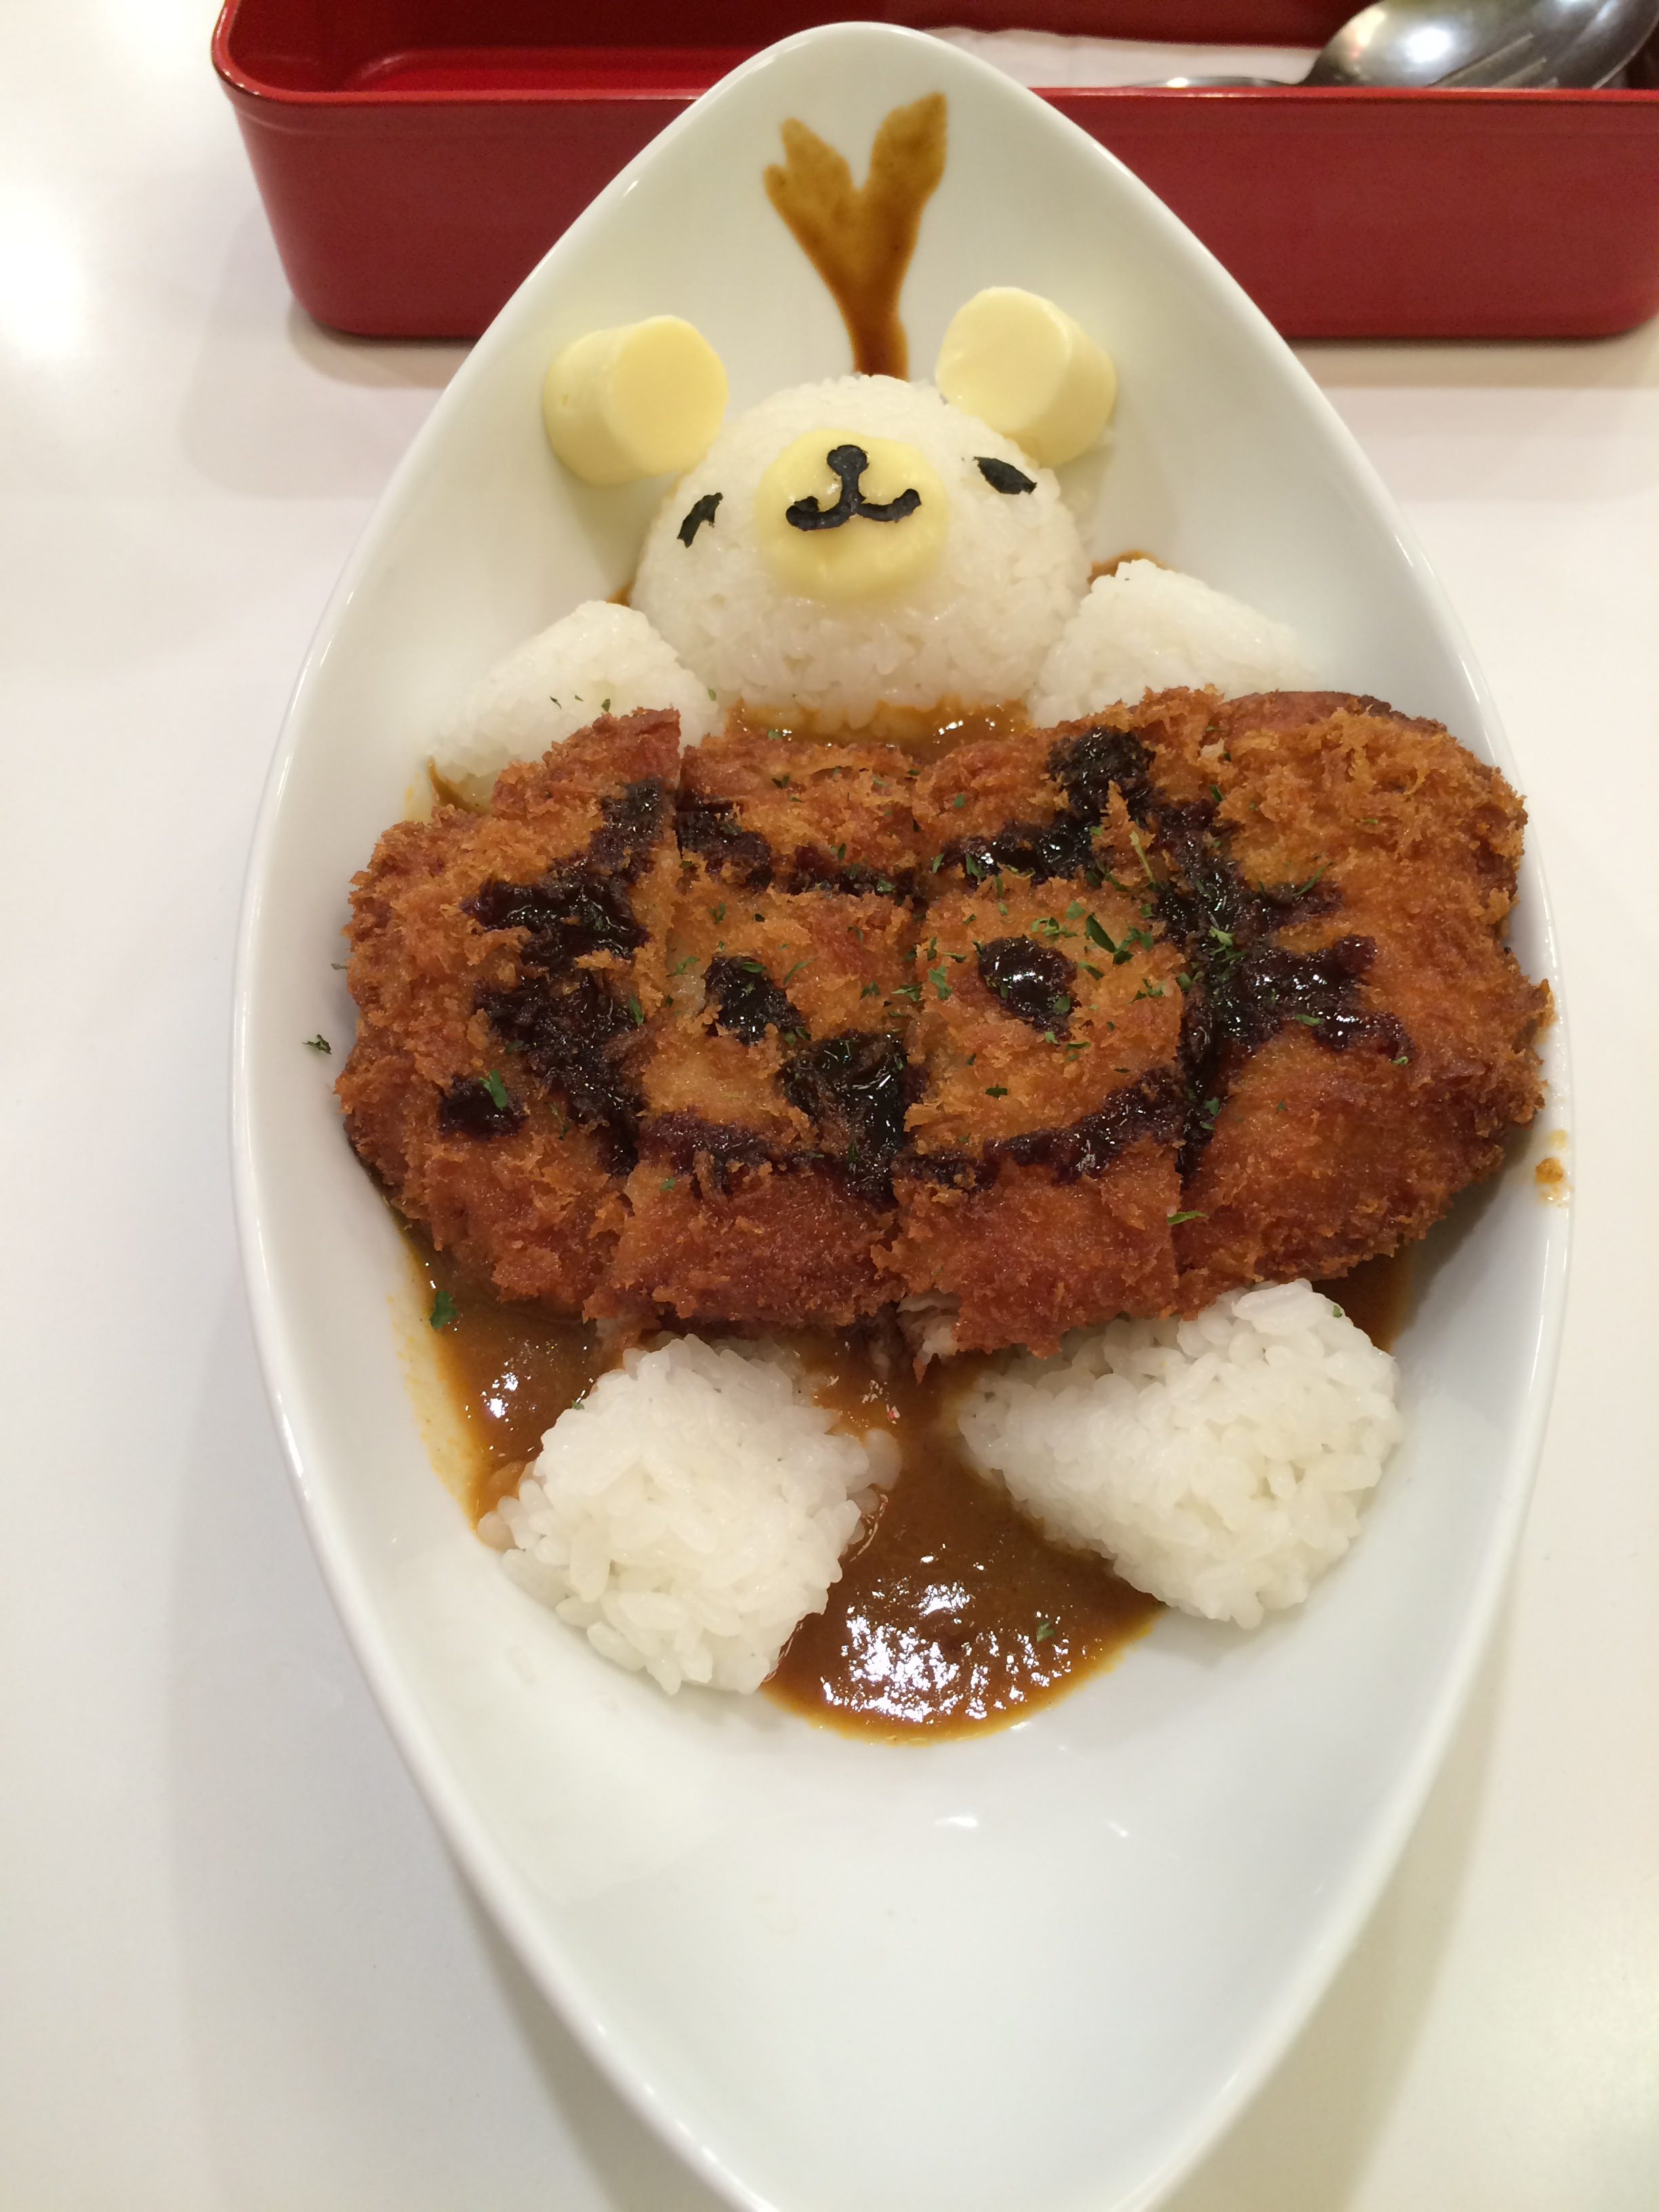 Curry rice in the shape of a bear!